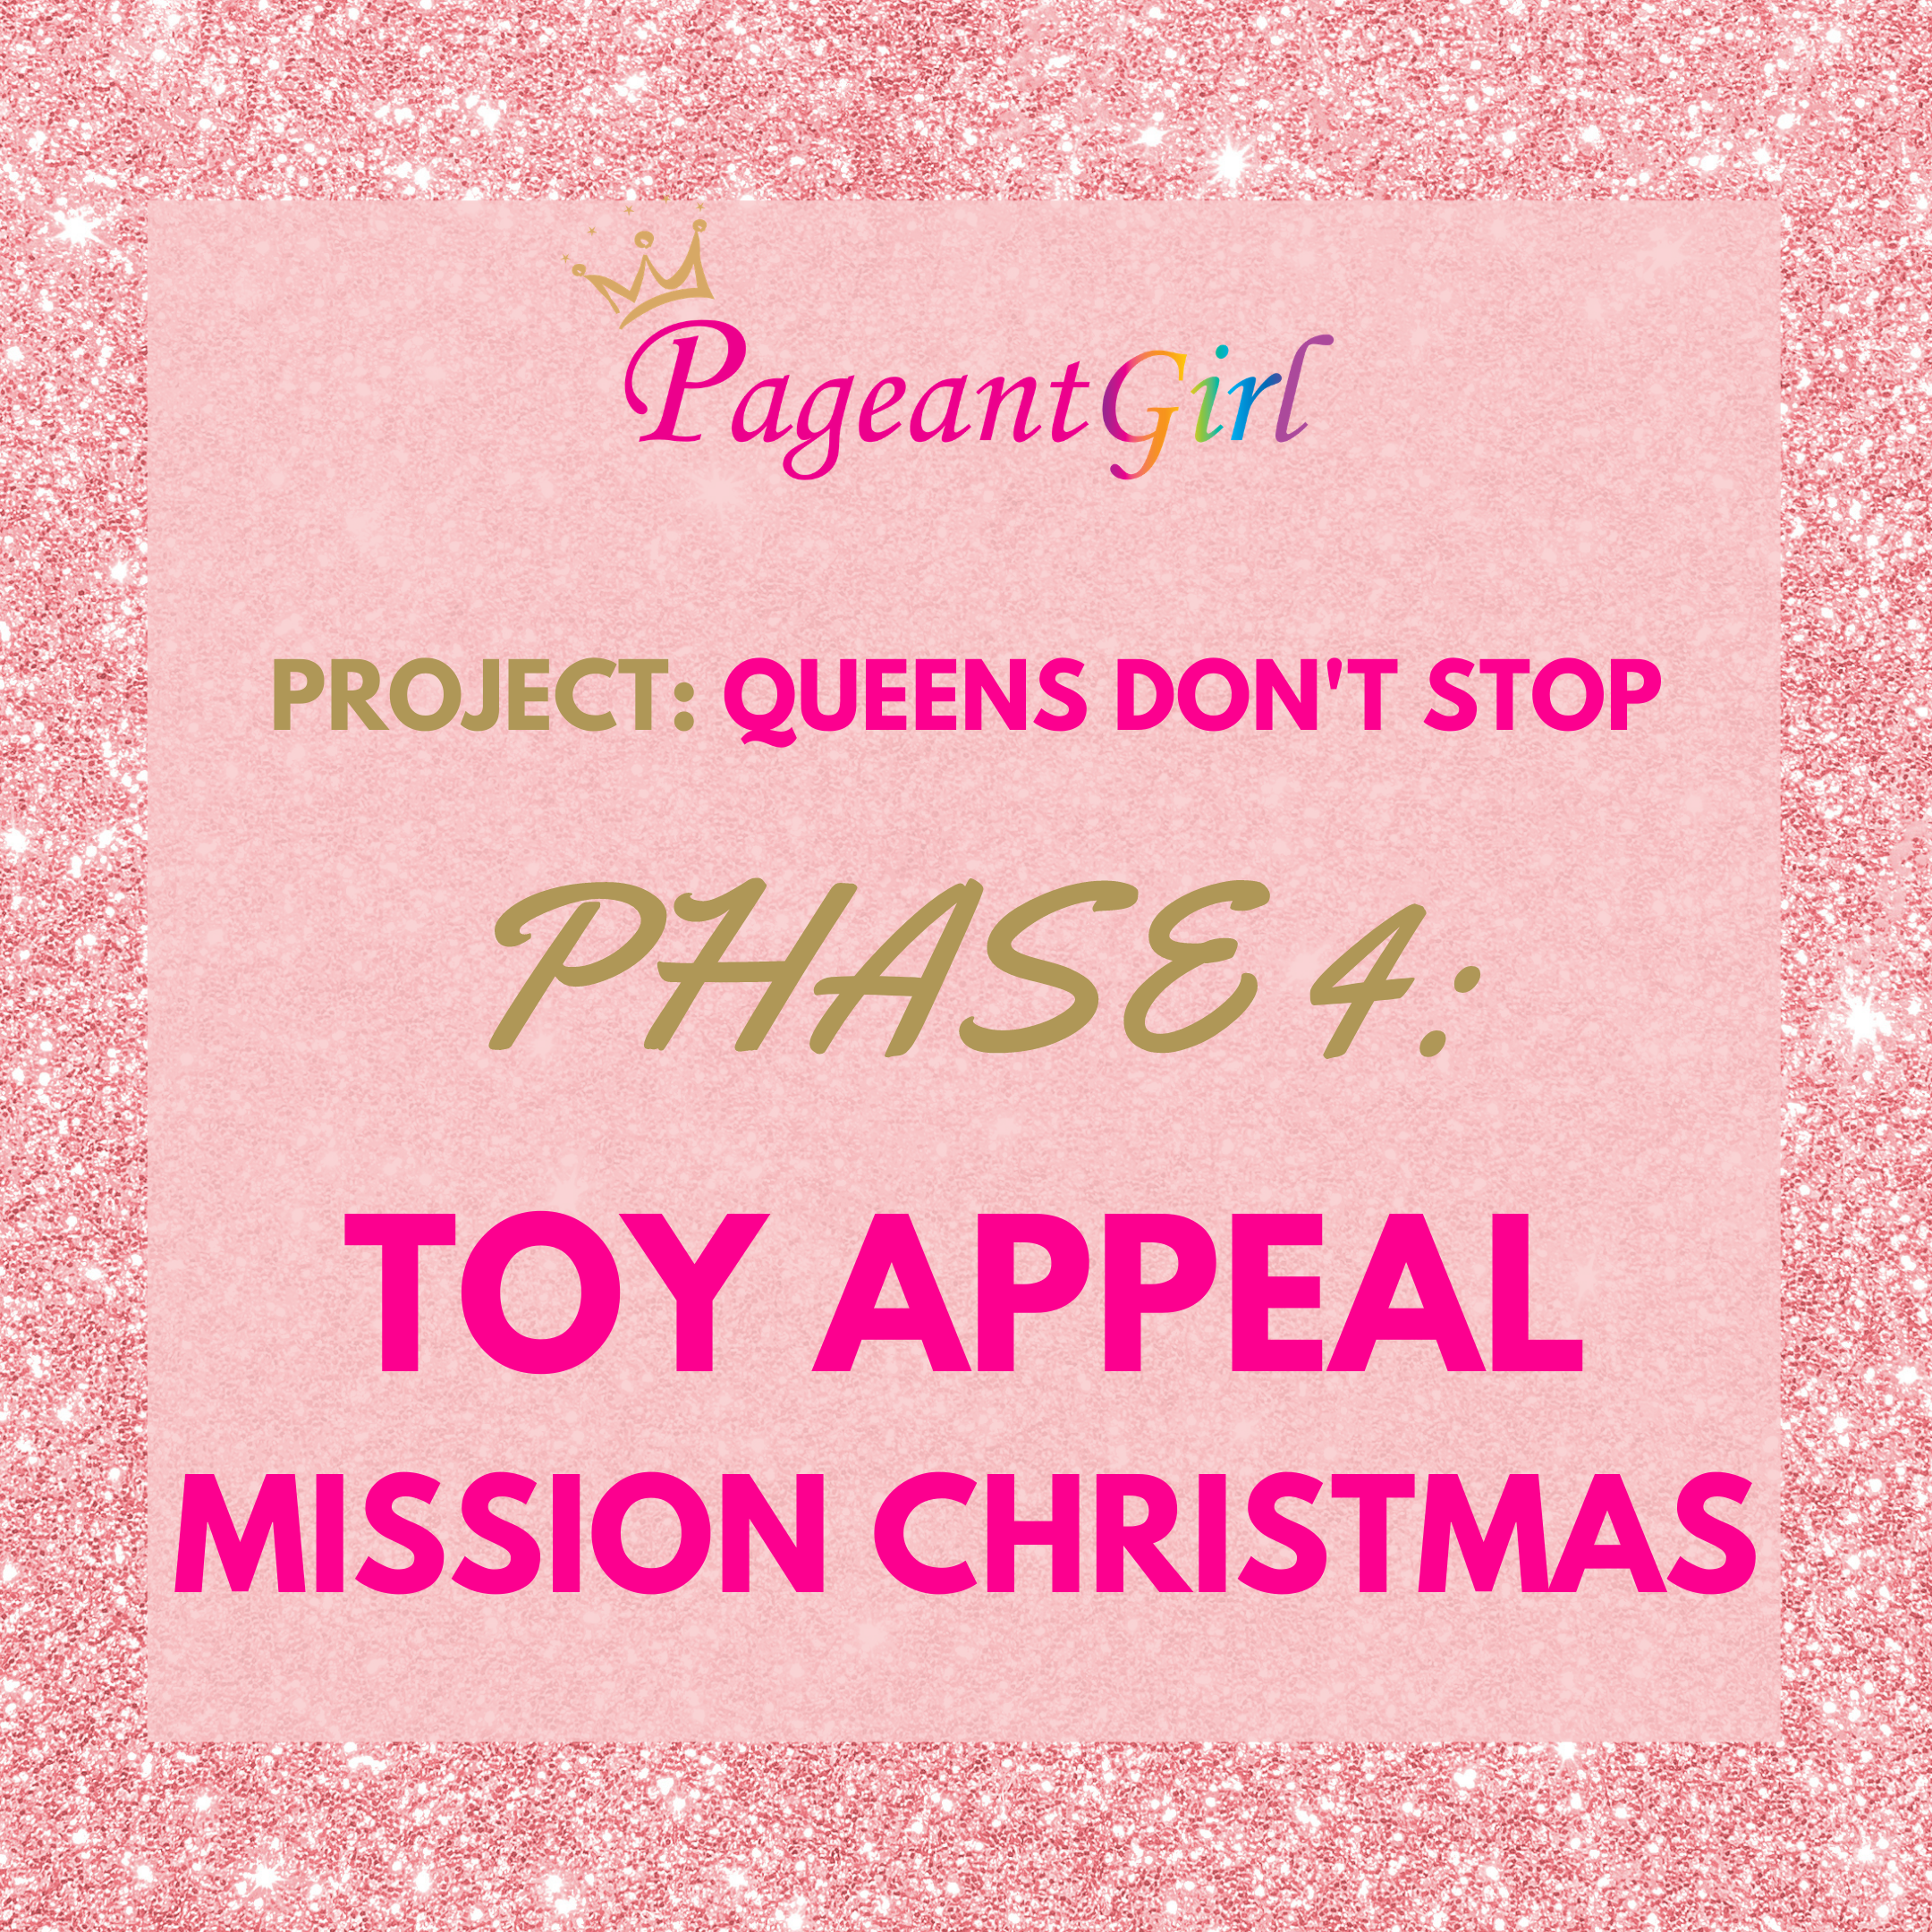 Queen's Don't Stop - Toy Appeal